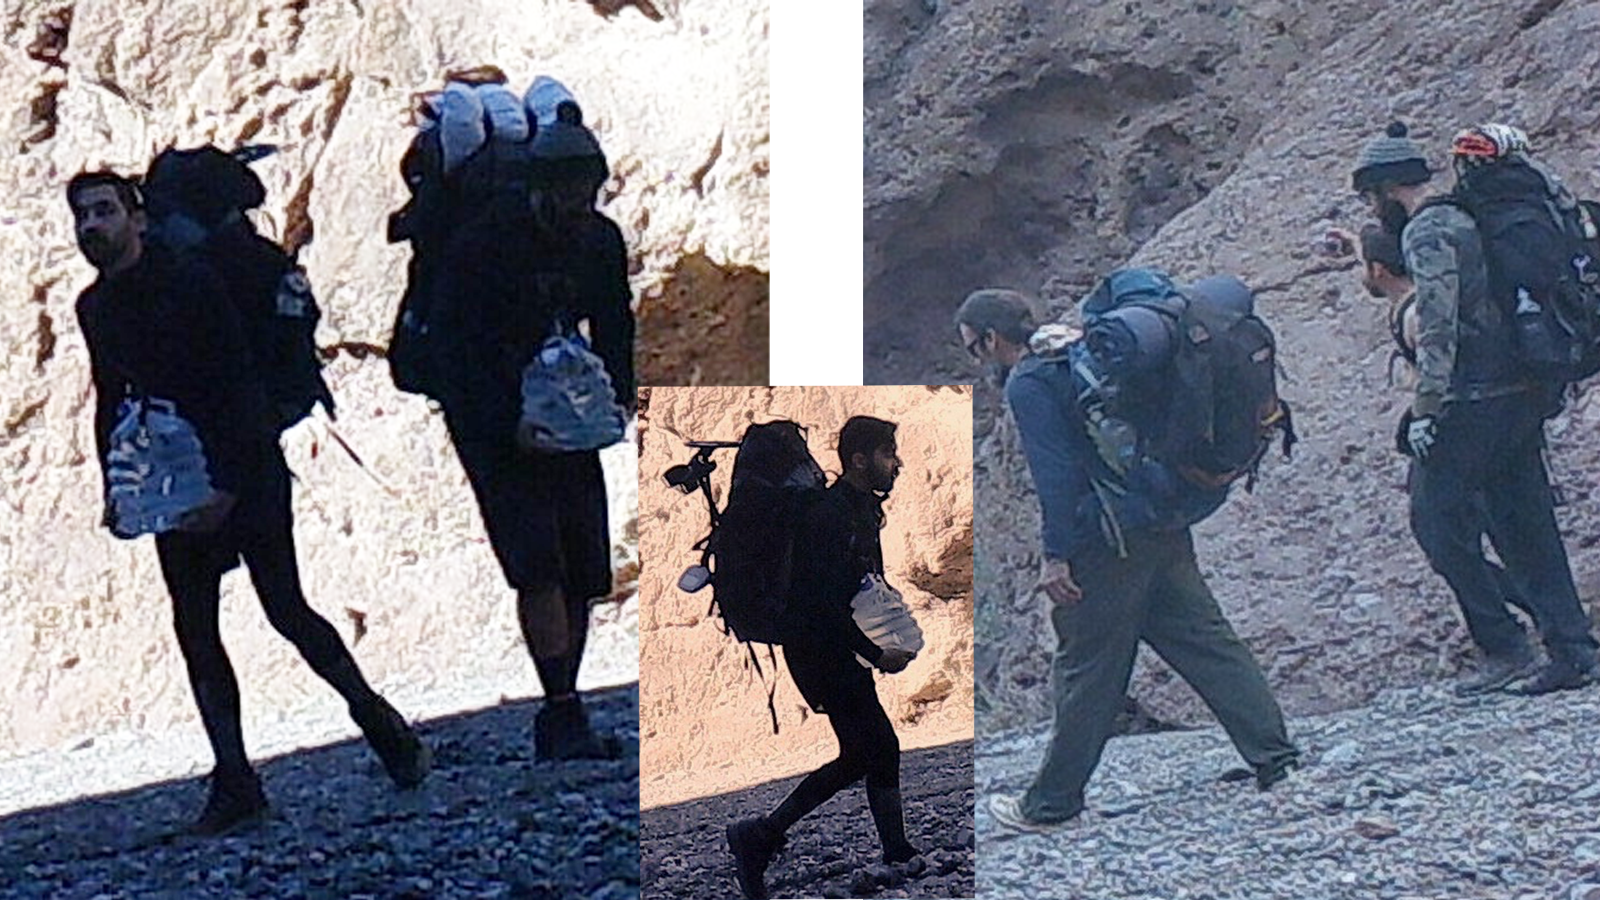 $1300 Reward If You Know Who Stole Death Valley's Missing Fossils